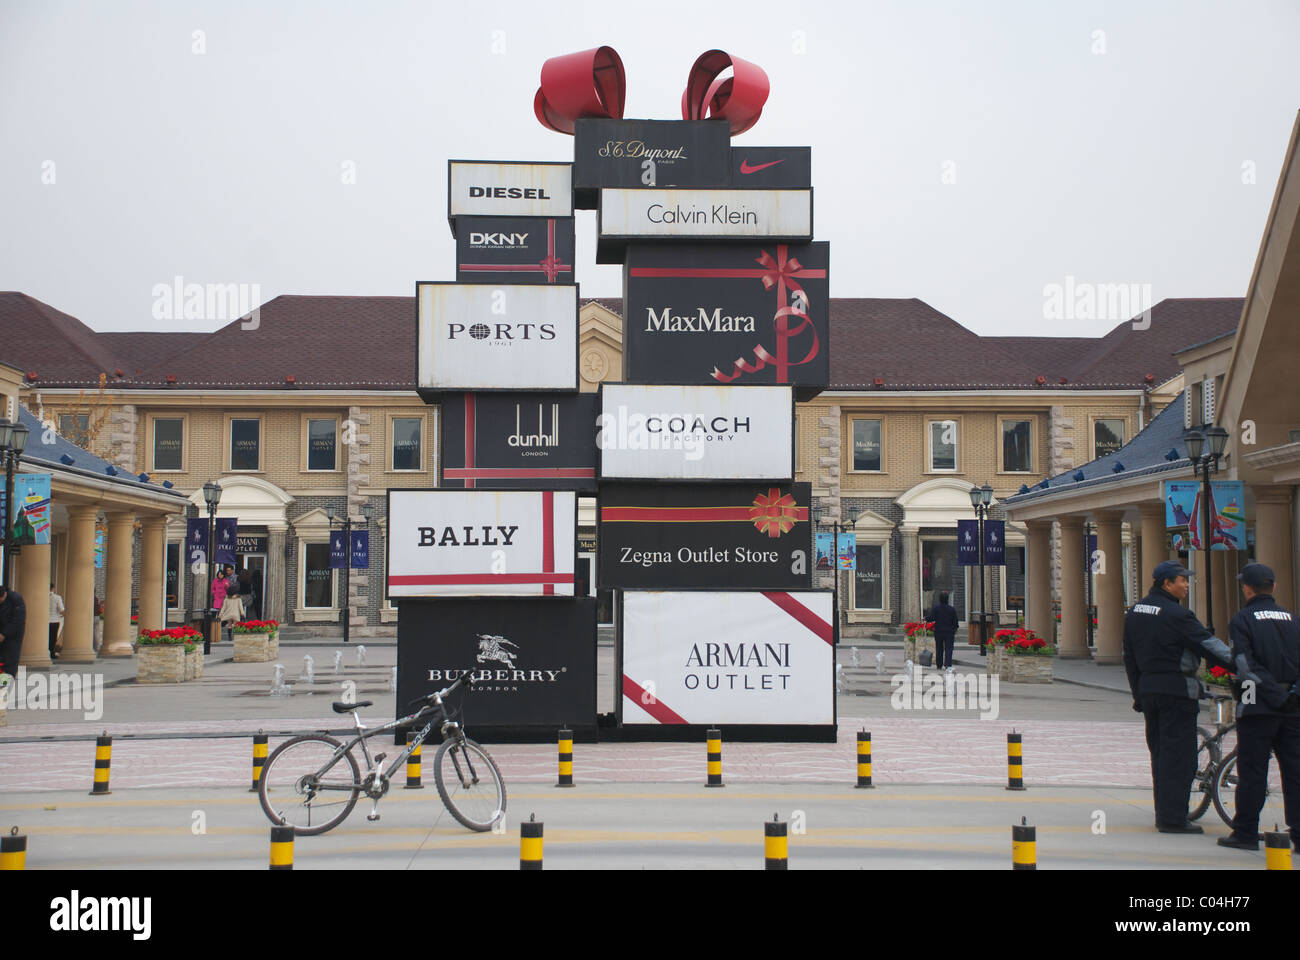 4fe3cc101 Premium Outlet Mall Stock Photos   Premium Outlet Mall Stock Images ...